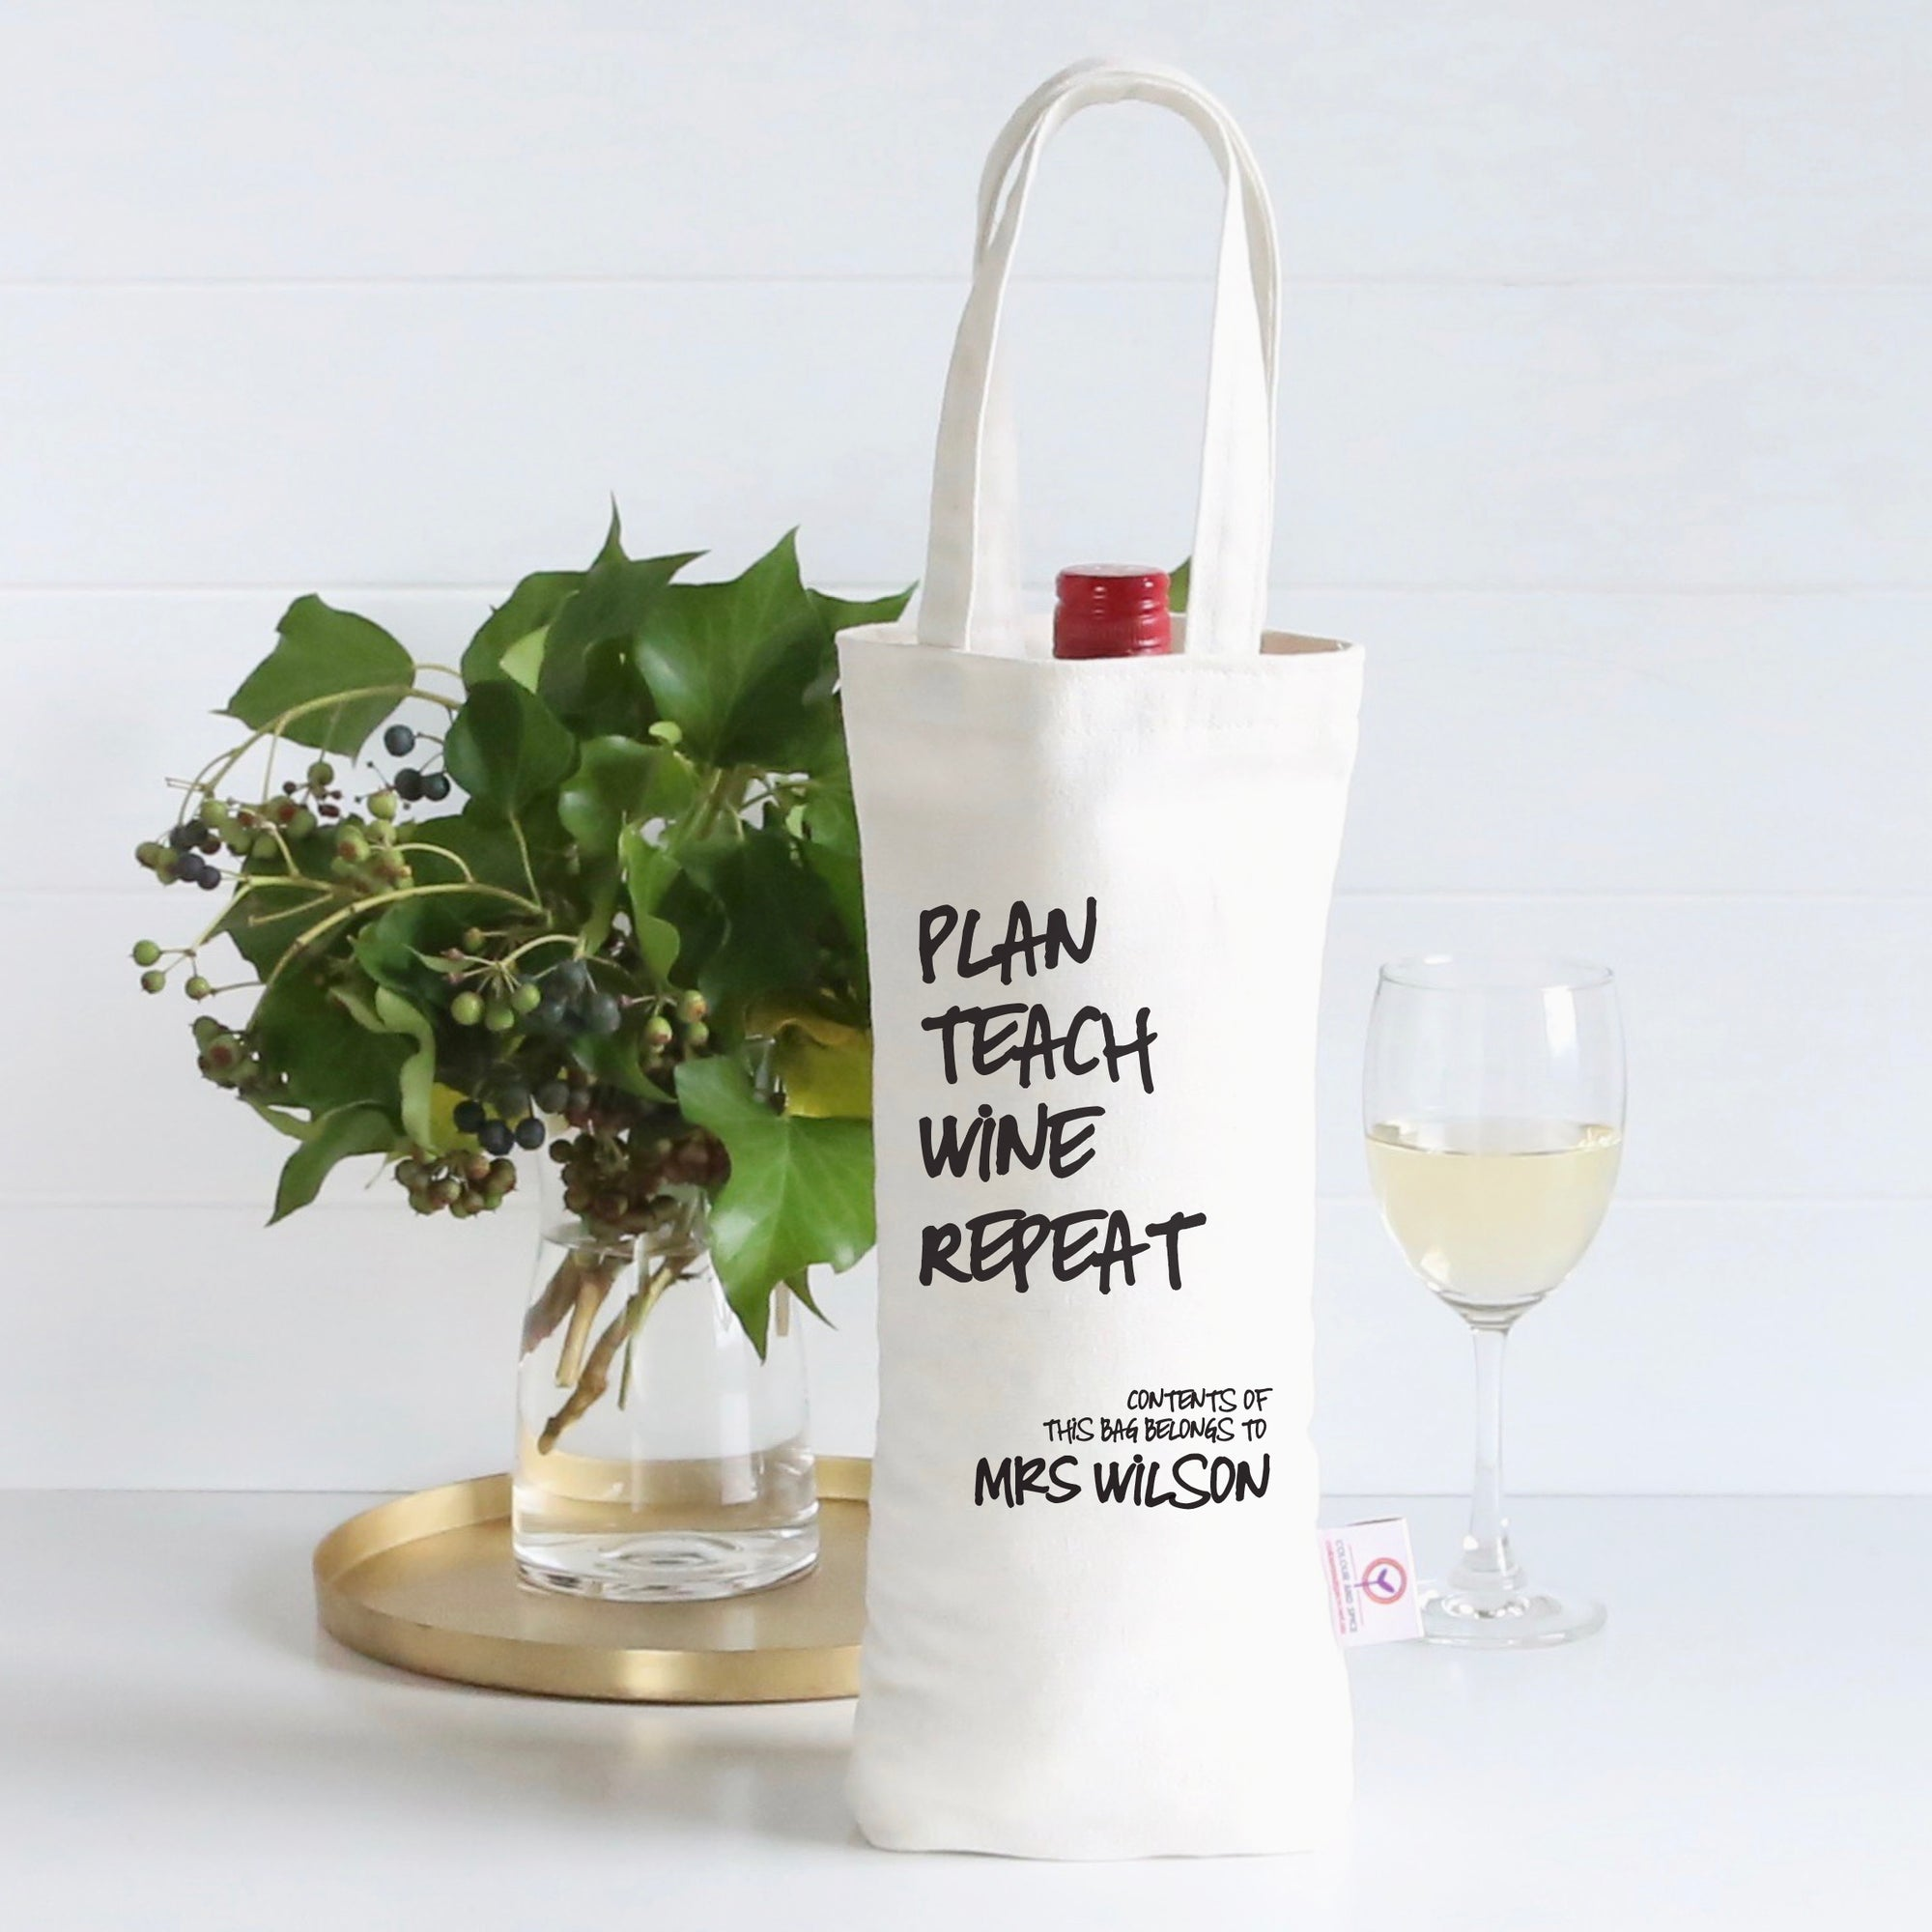 Plan Teach Wine Repeat Wine Bag